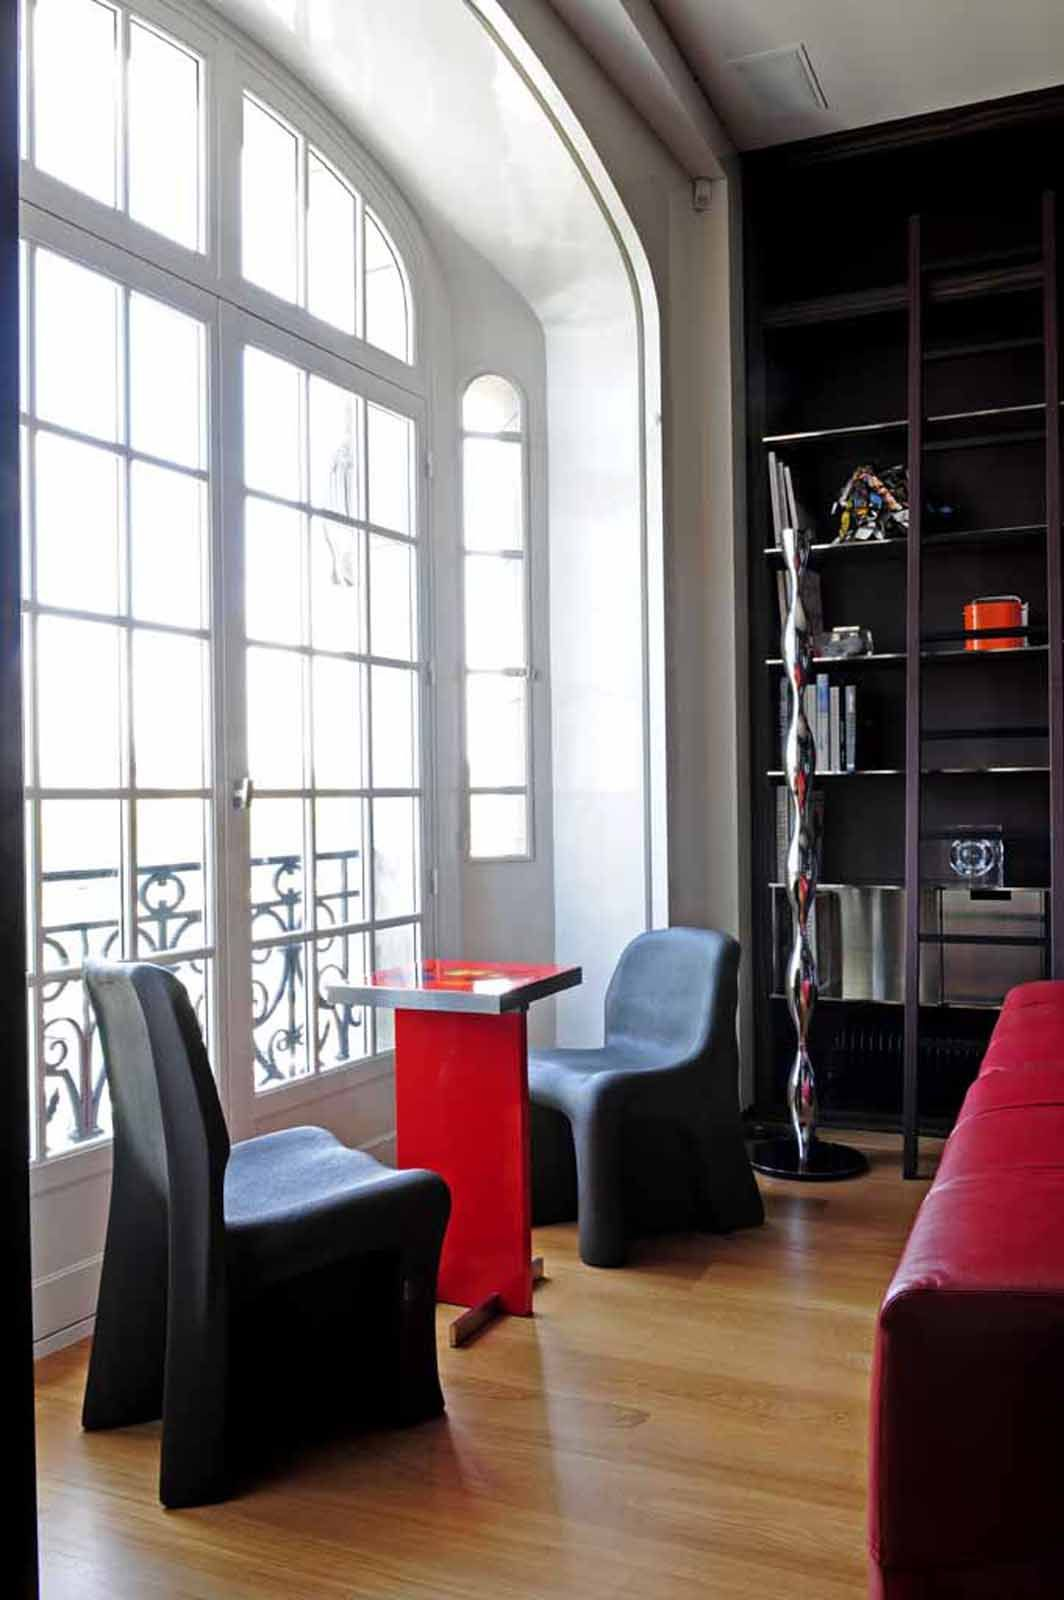 Loft bedroom ideas with ensuite  Appartement Quai Voltaire   Laurent Bourgois et Caroline Sarkozy